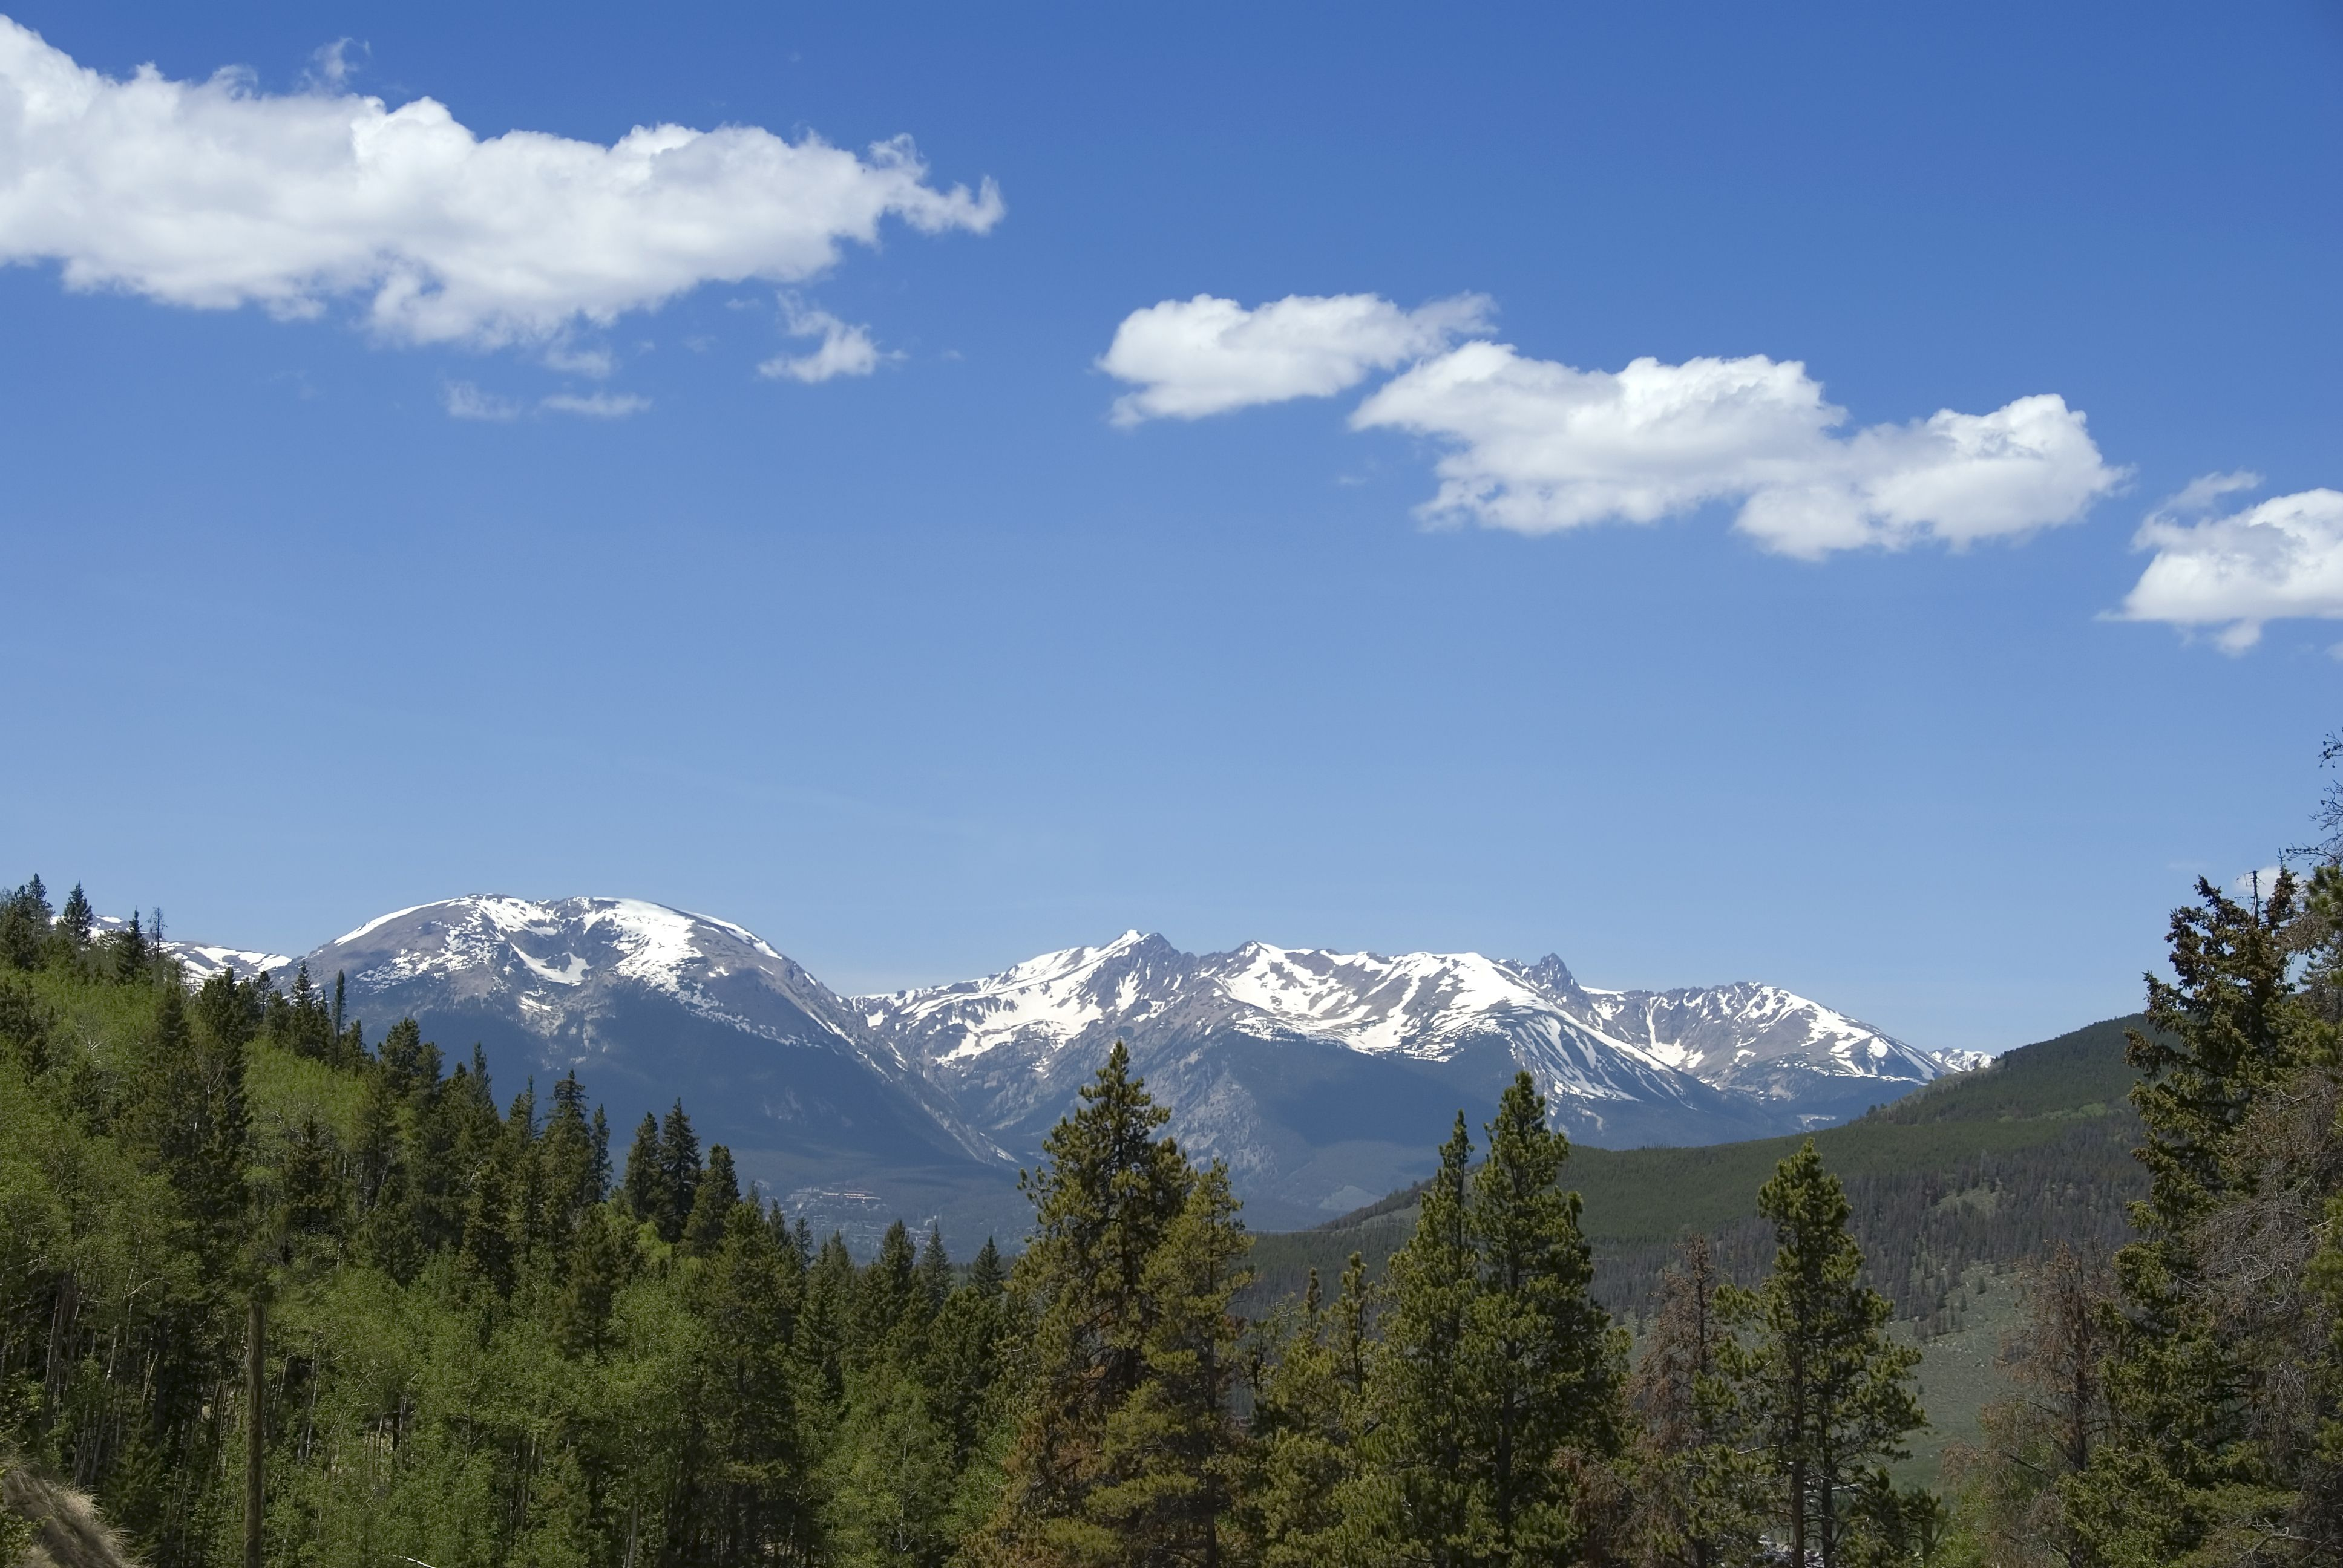 The 10 Best Things To Do In Keystone This Summer